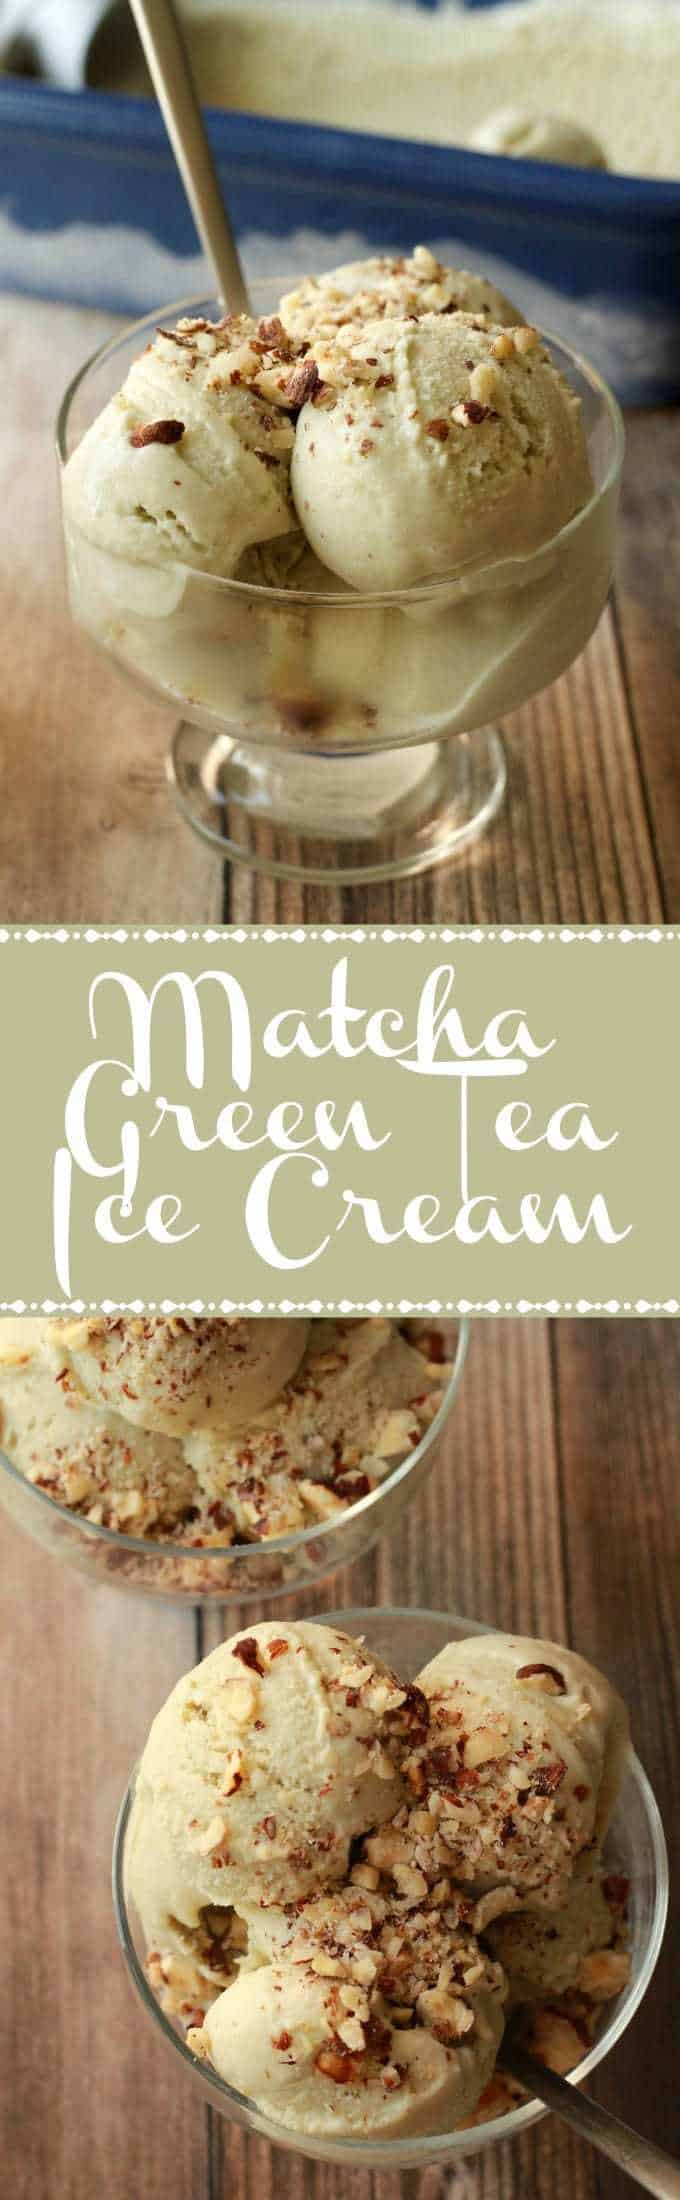 Matcha Green Tea Ice Cream #vegan #lovingitvegan #icecream #matcha #glutenfree #greentea